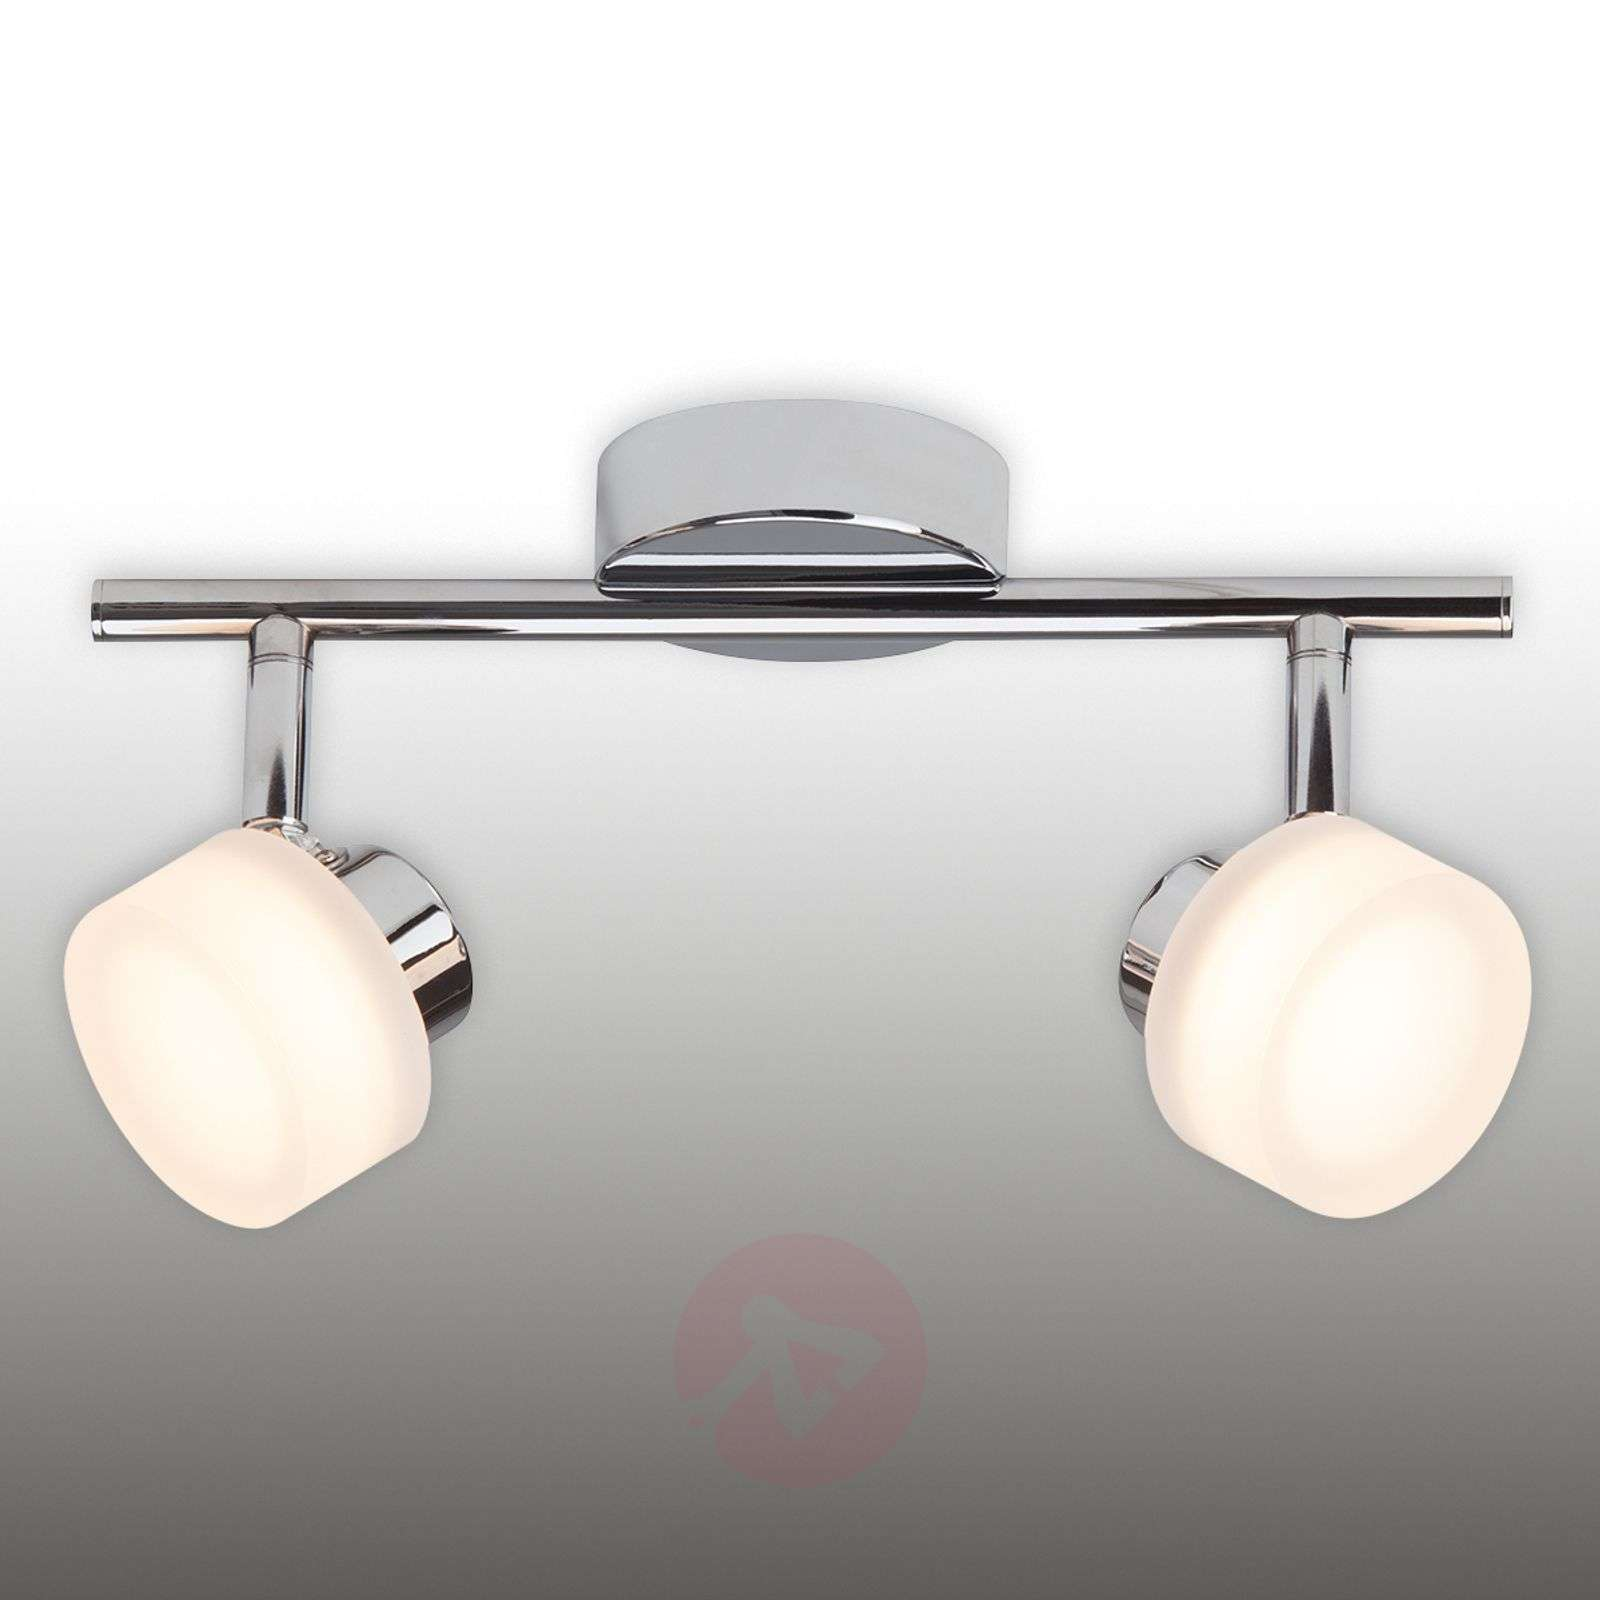 RORY 2-pkt. spot sufitowy LED-1508967-01